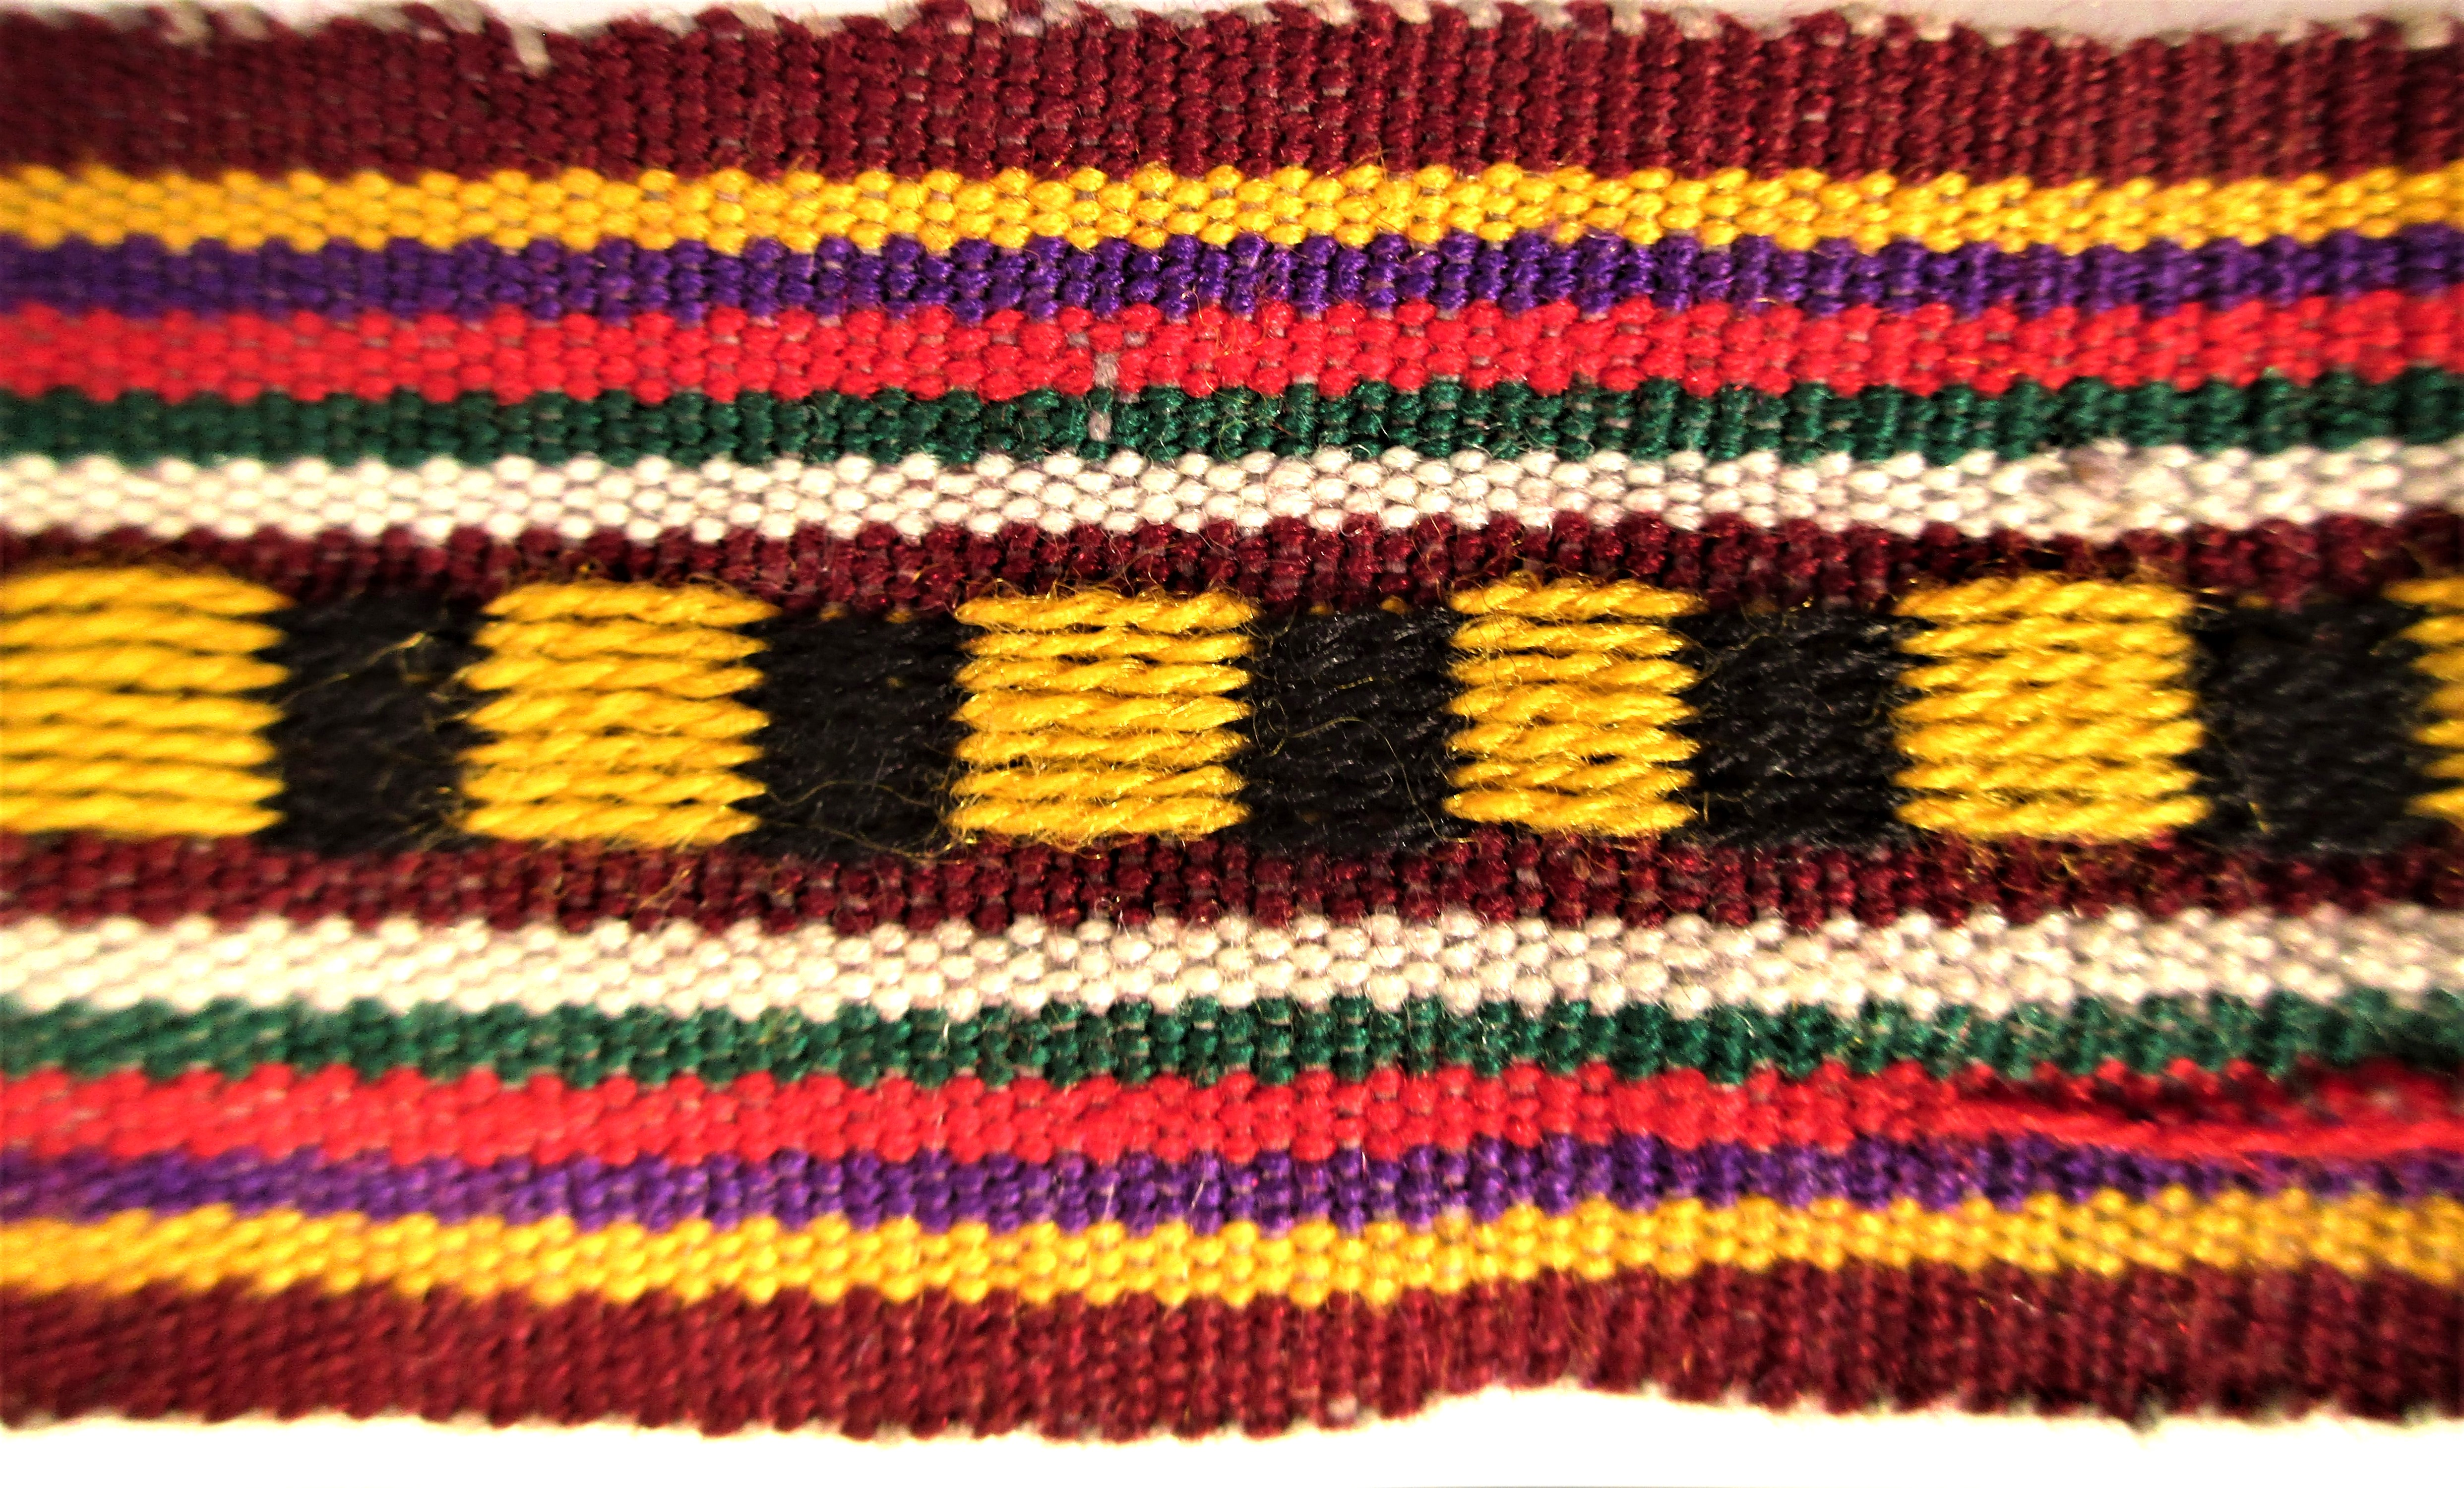 3x Woven bands. When you have to transport your goods and house hold items on a donkey or horse - Image 2 of 2